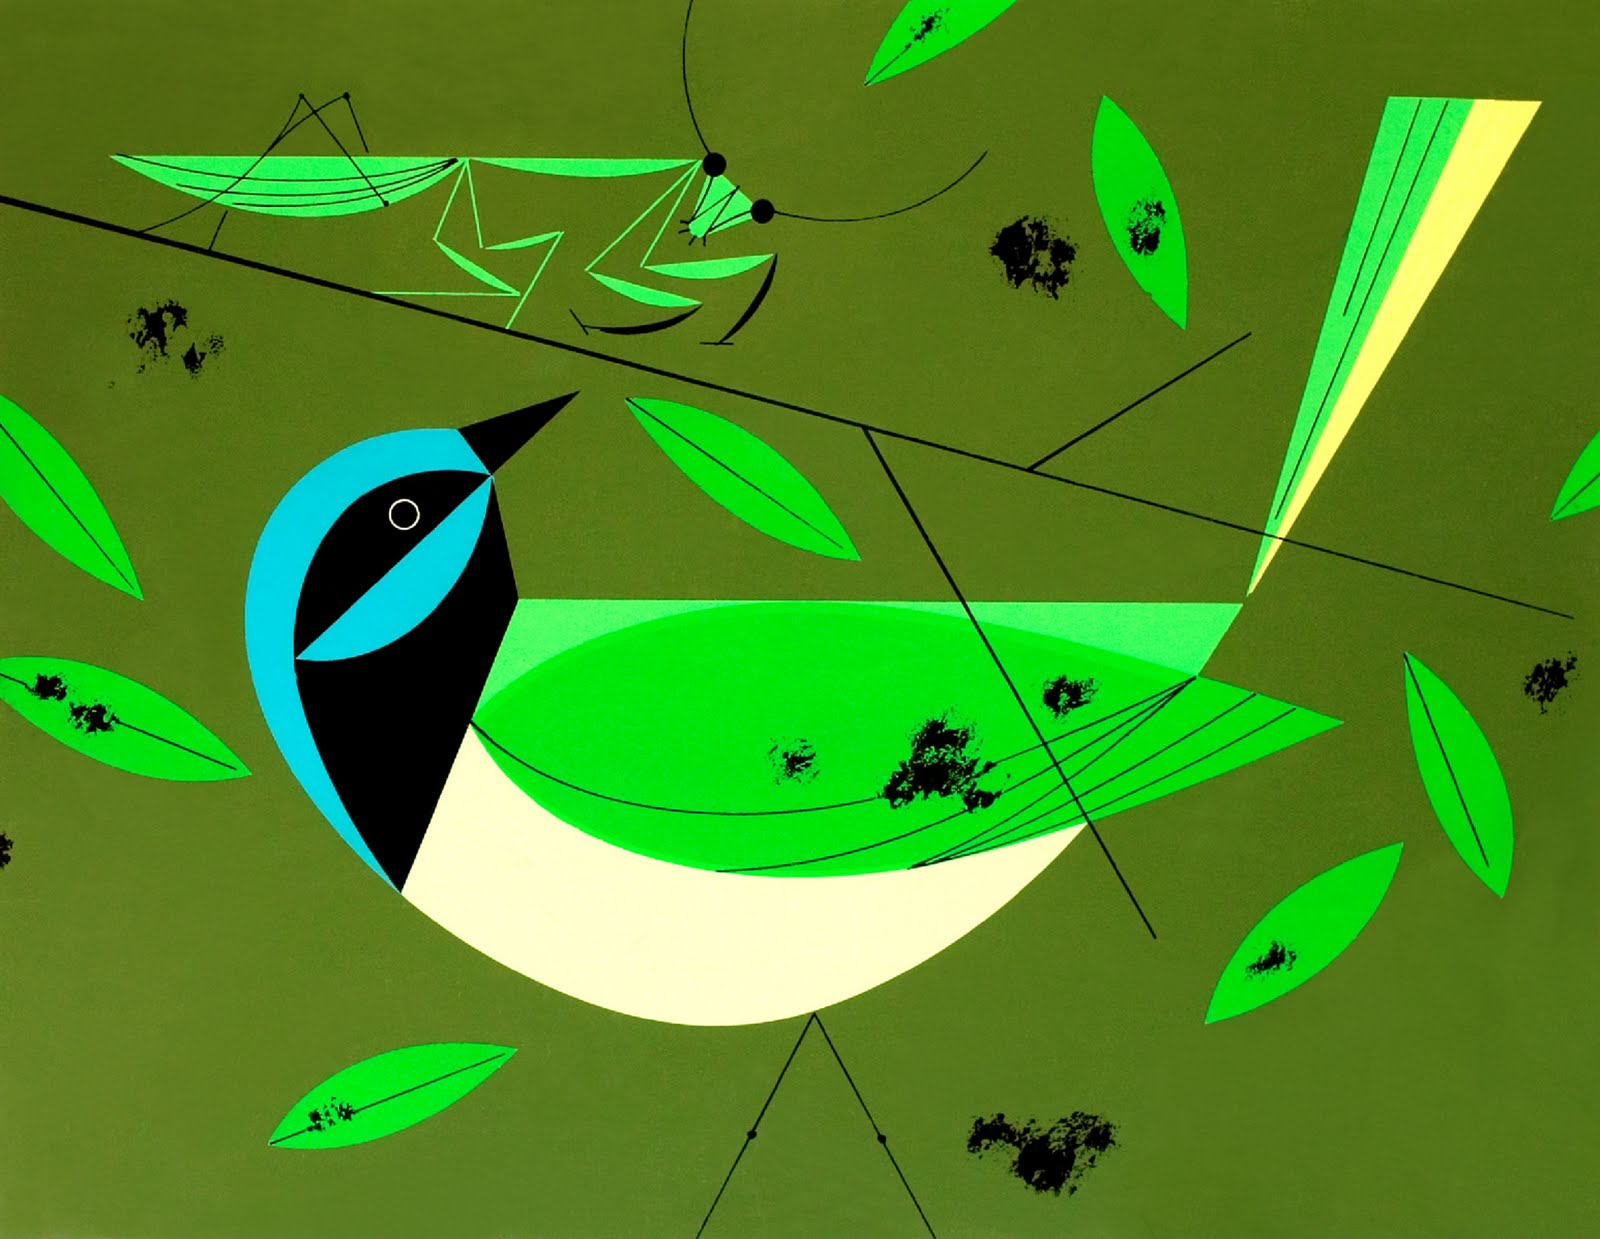 The Supplement: Charley Harper